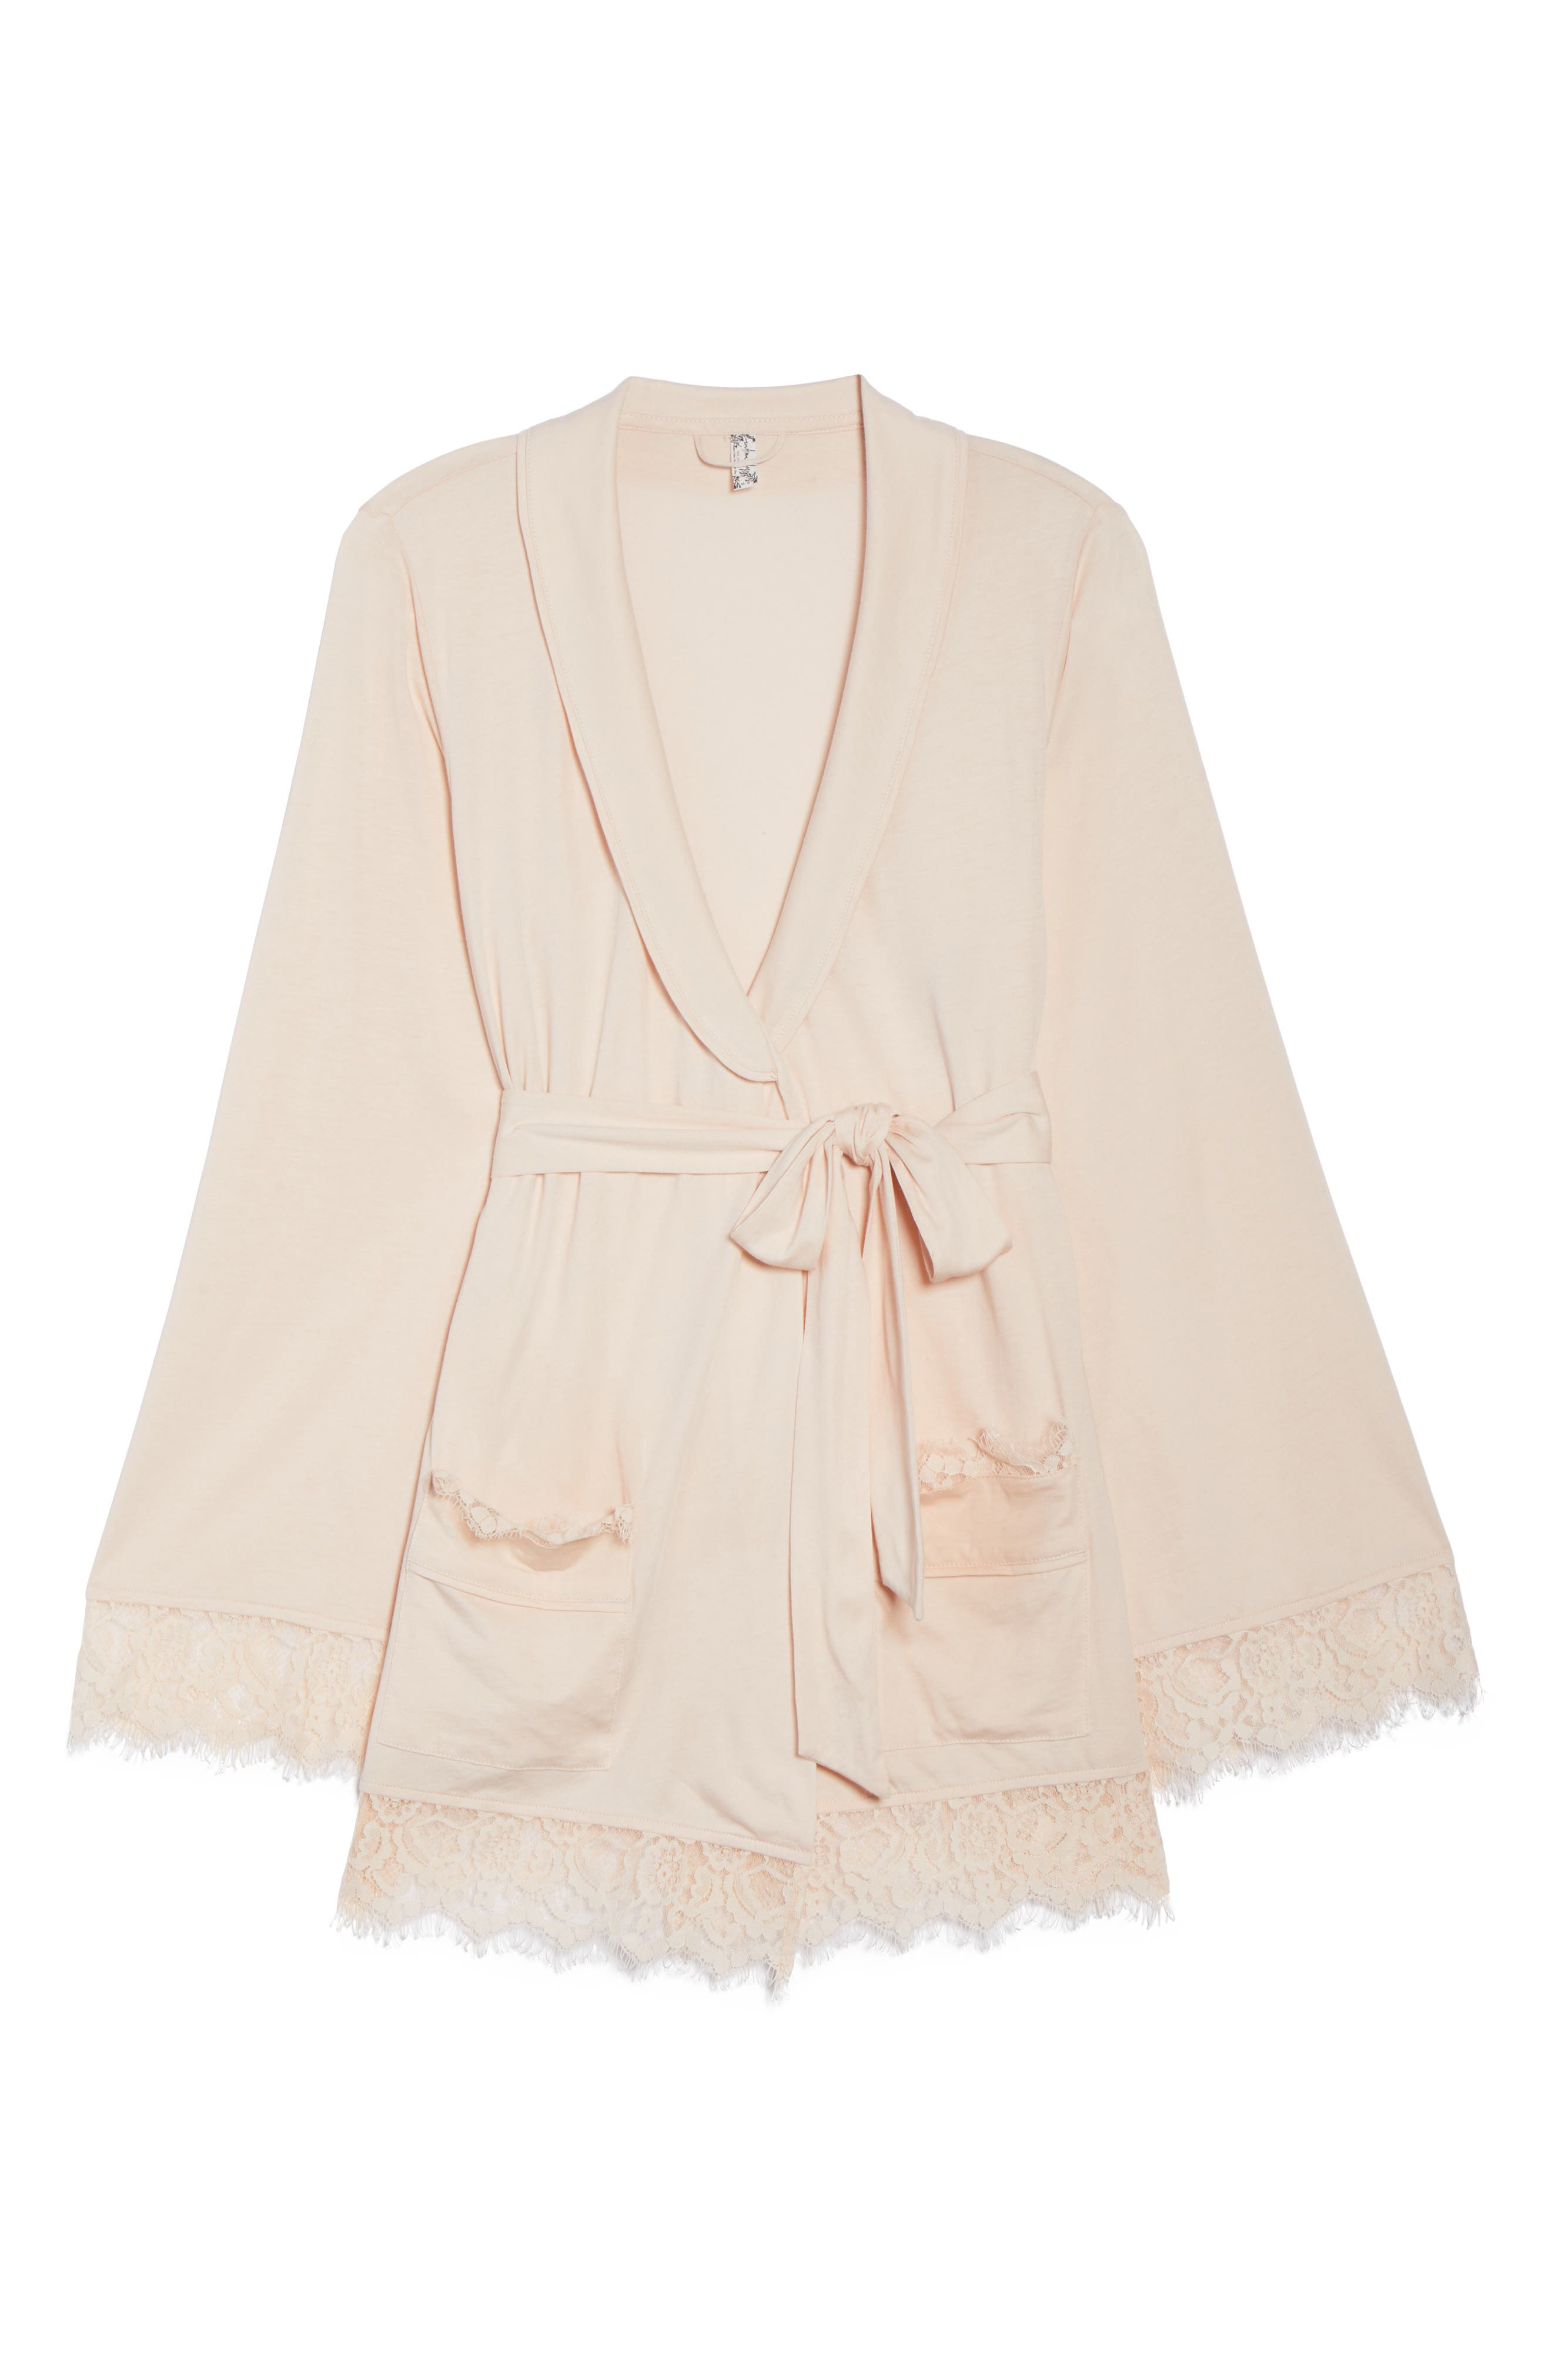 Sweetest Thing Robe,                             Alternate thumbnail 18, color,